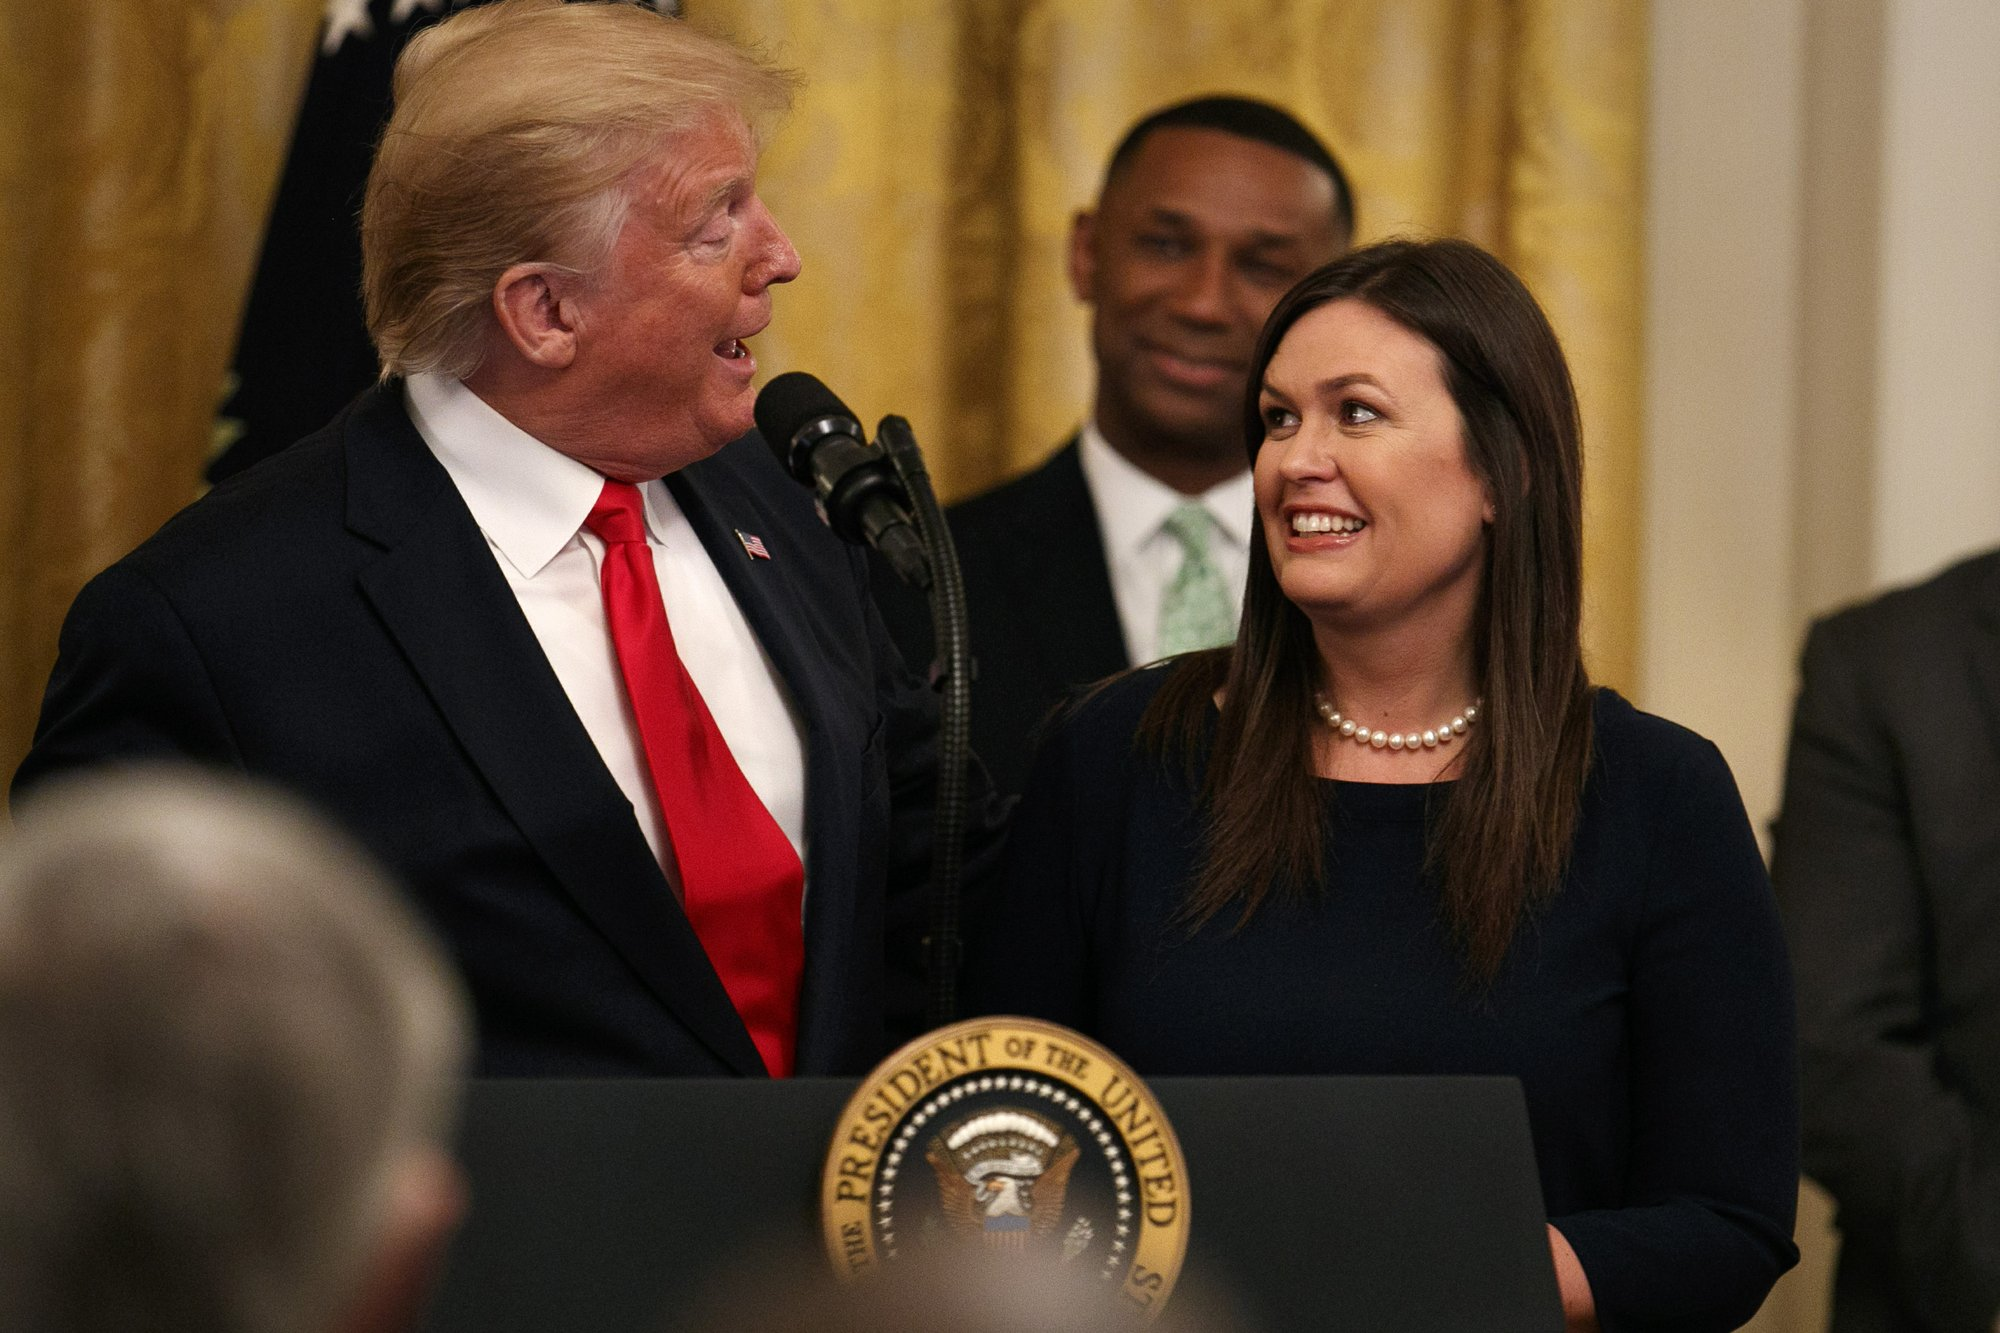 Trump pays tribute to Sarah Sanders